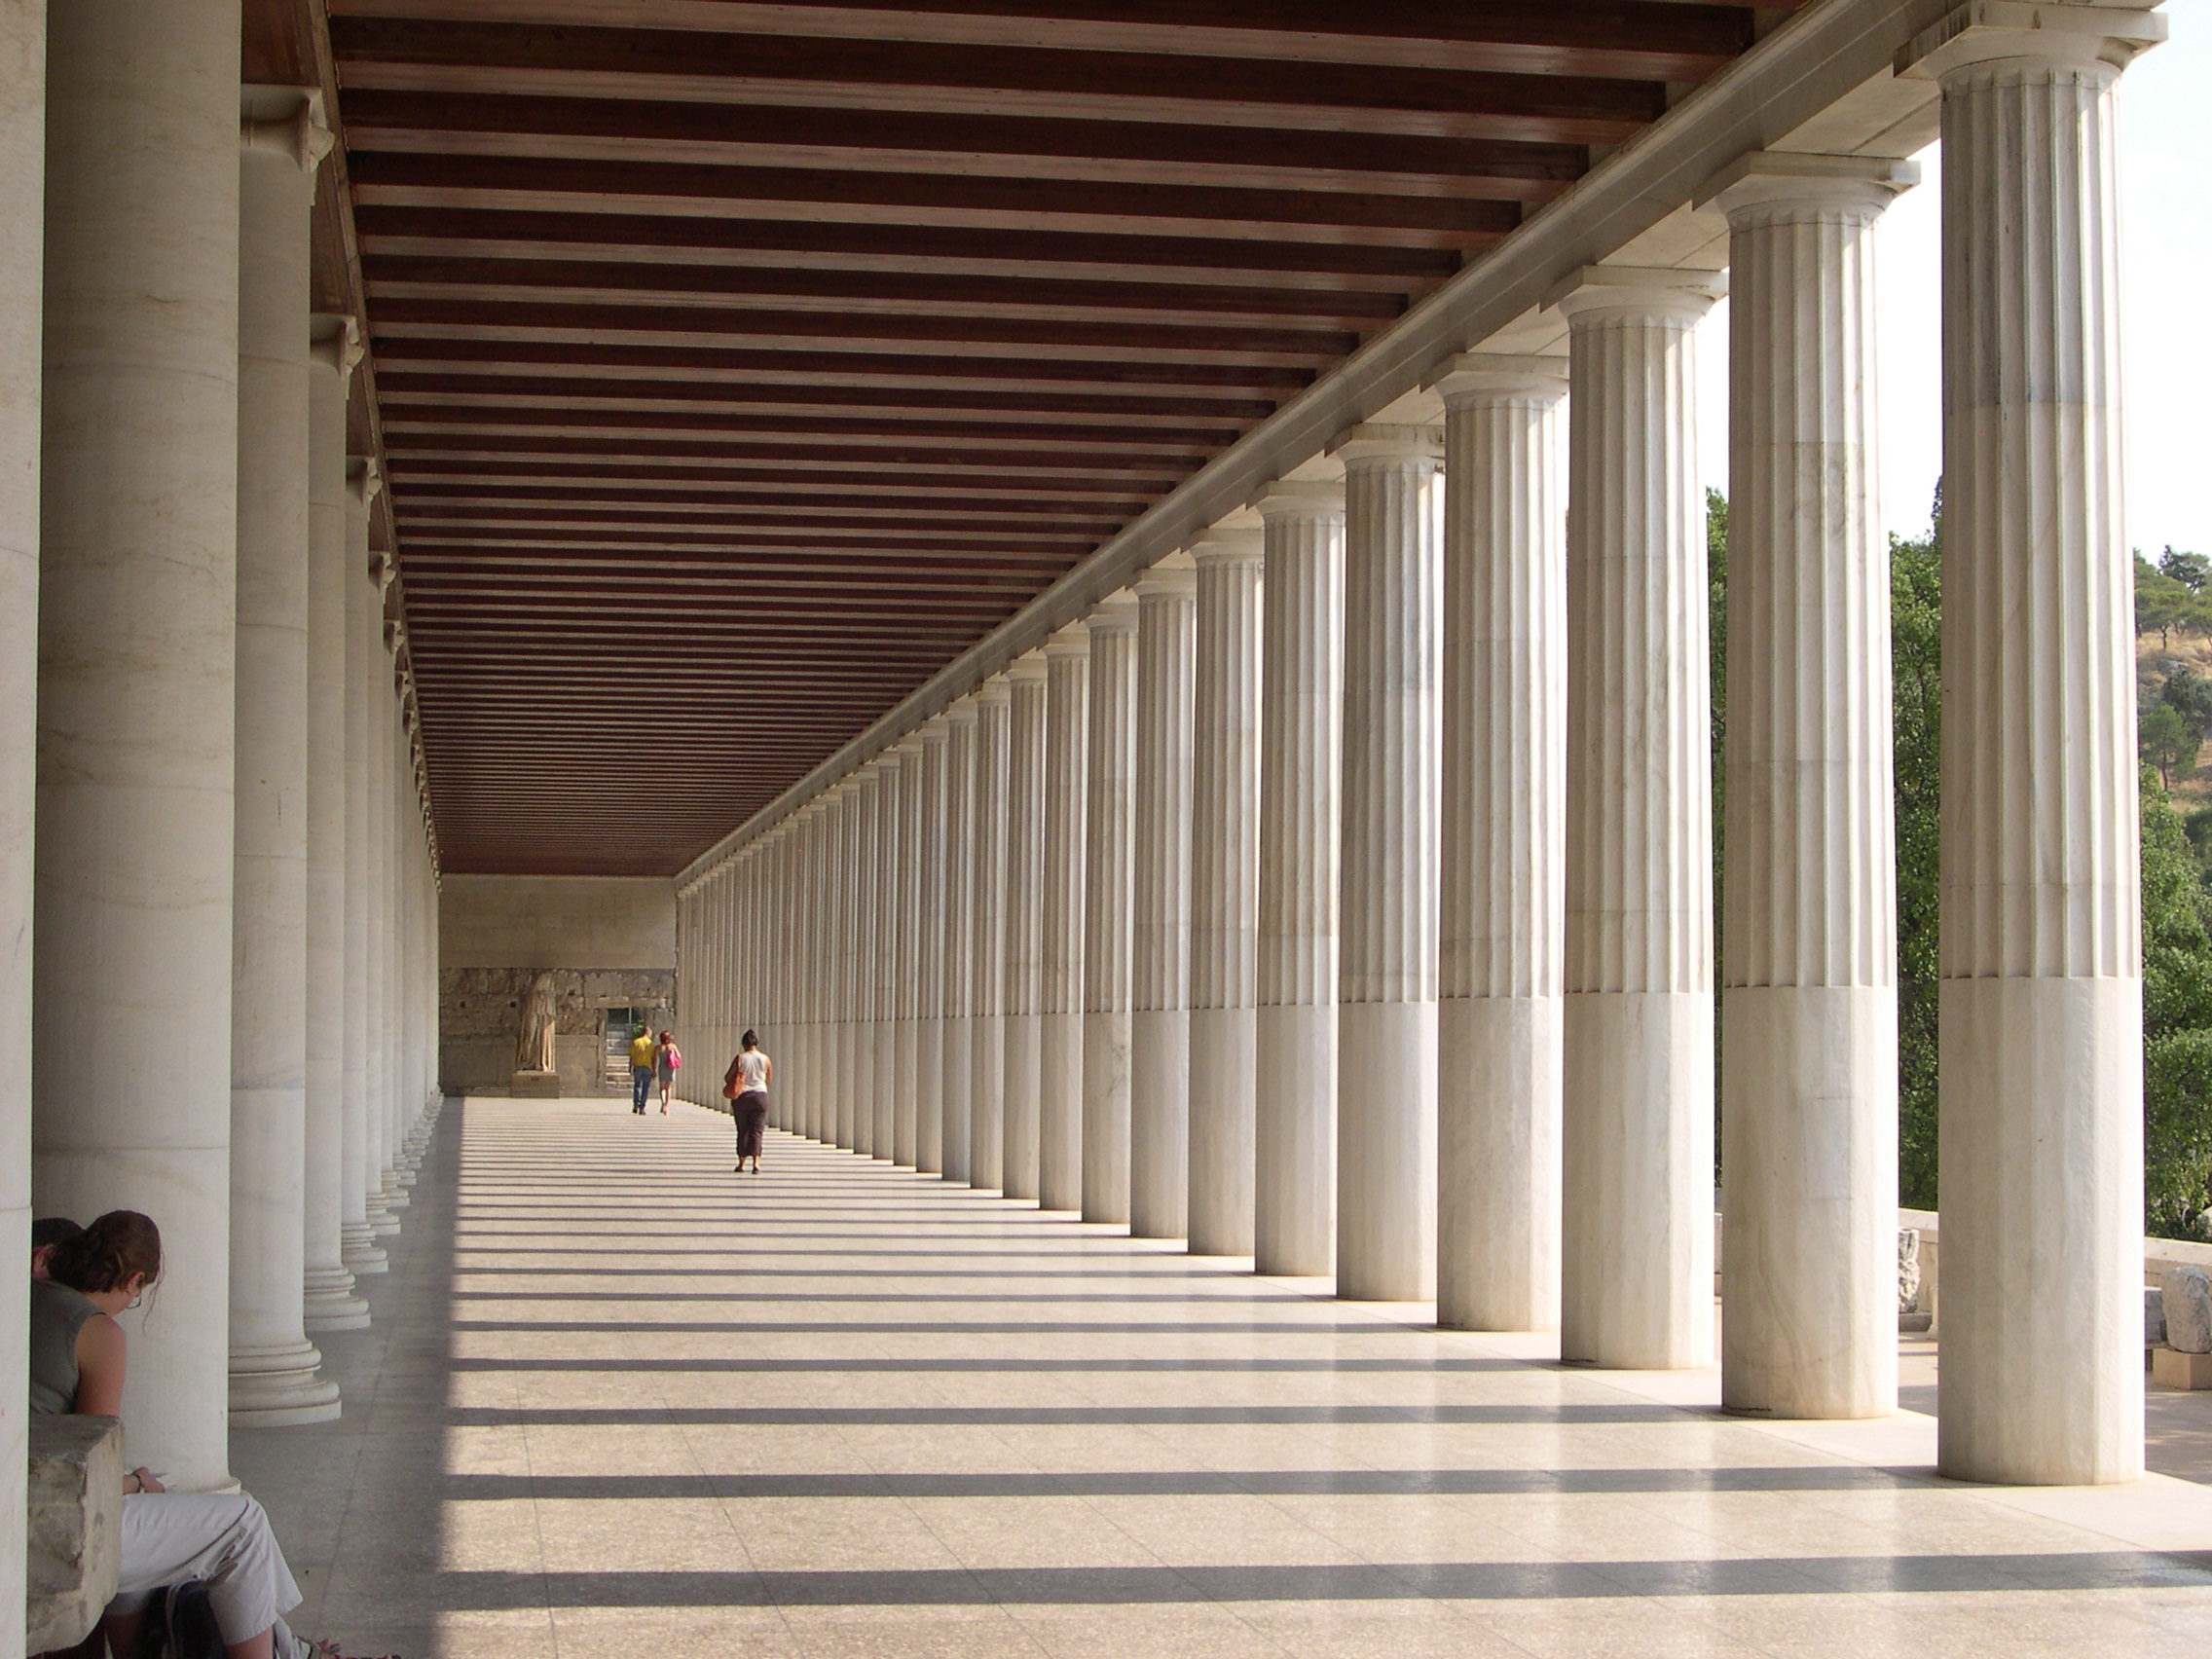 stoa_of_attalos_15_by_disney_stock